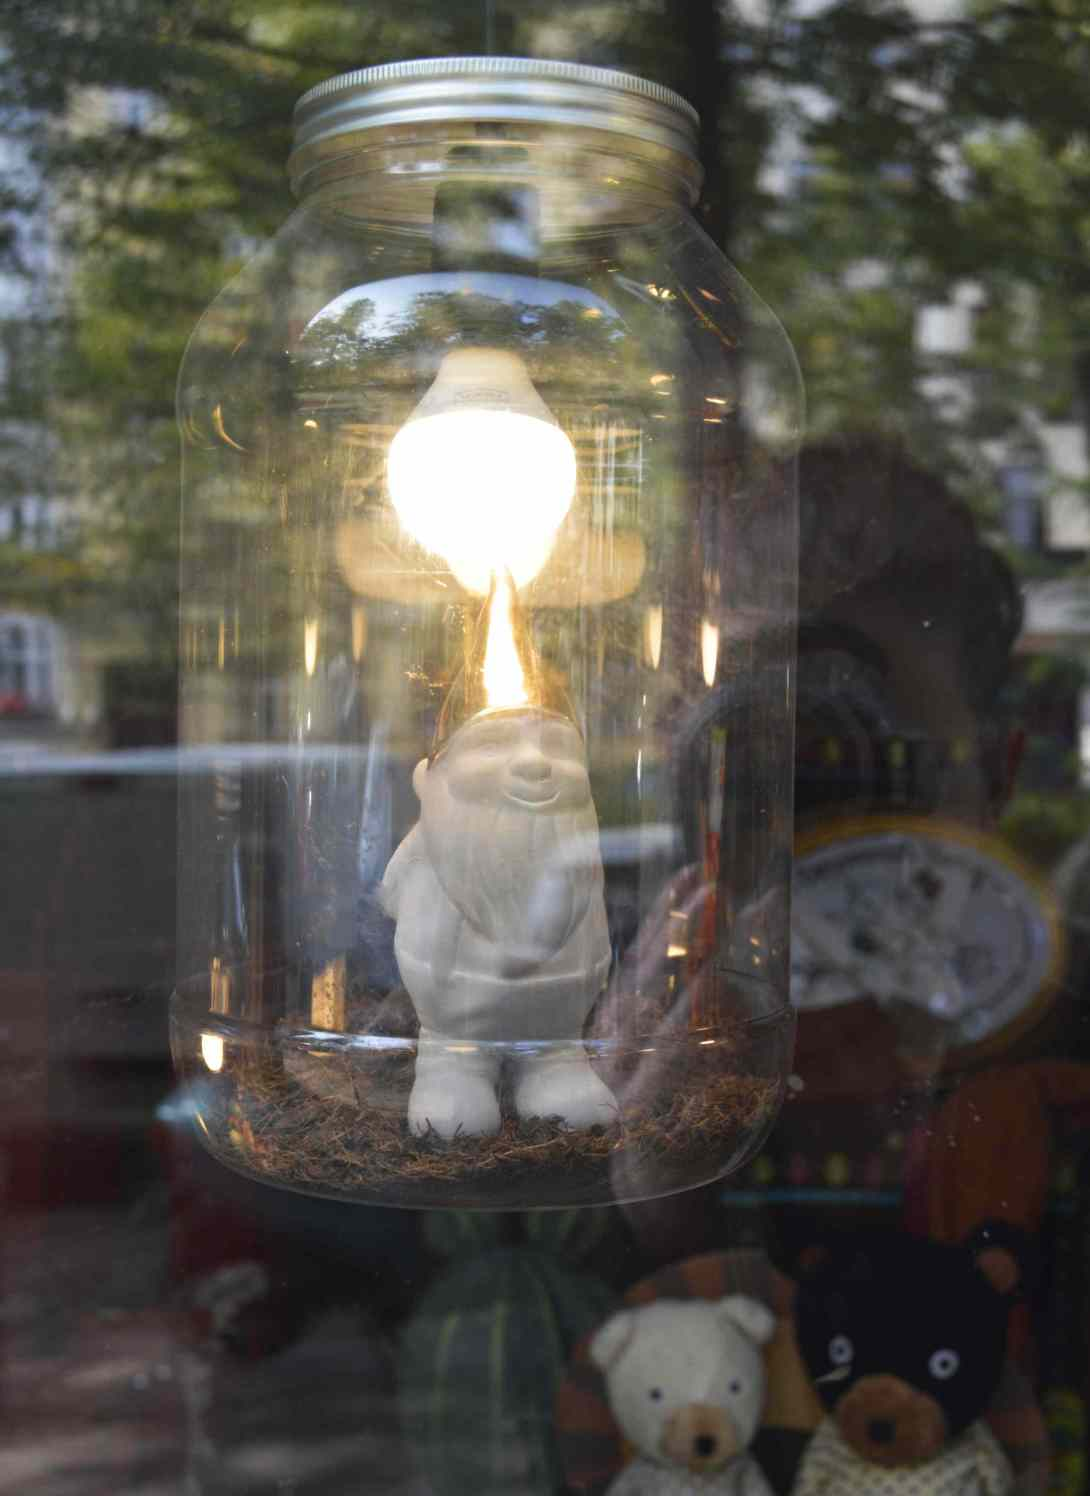 self portrait with garden gnome lamp berlin be kitschig blog